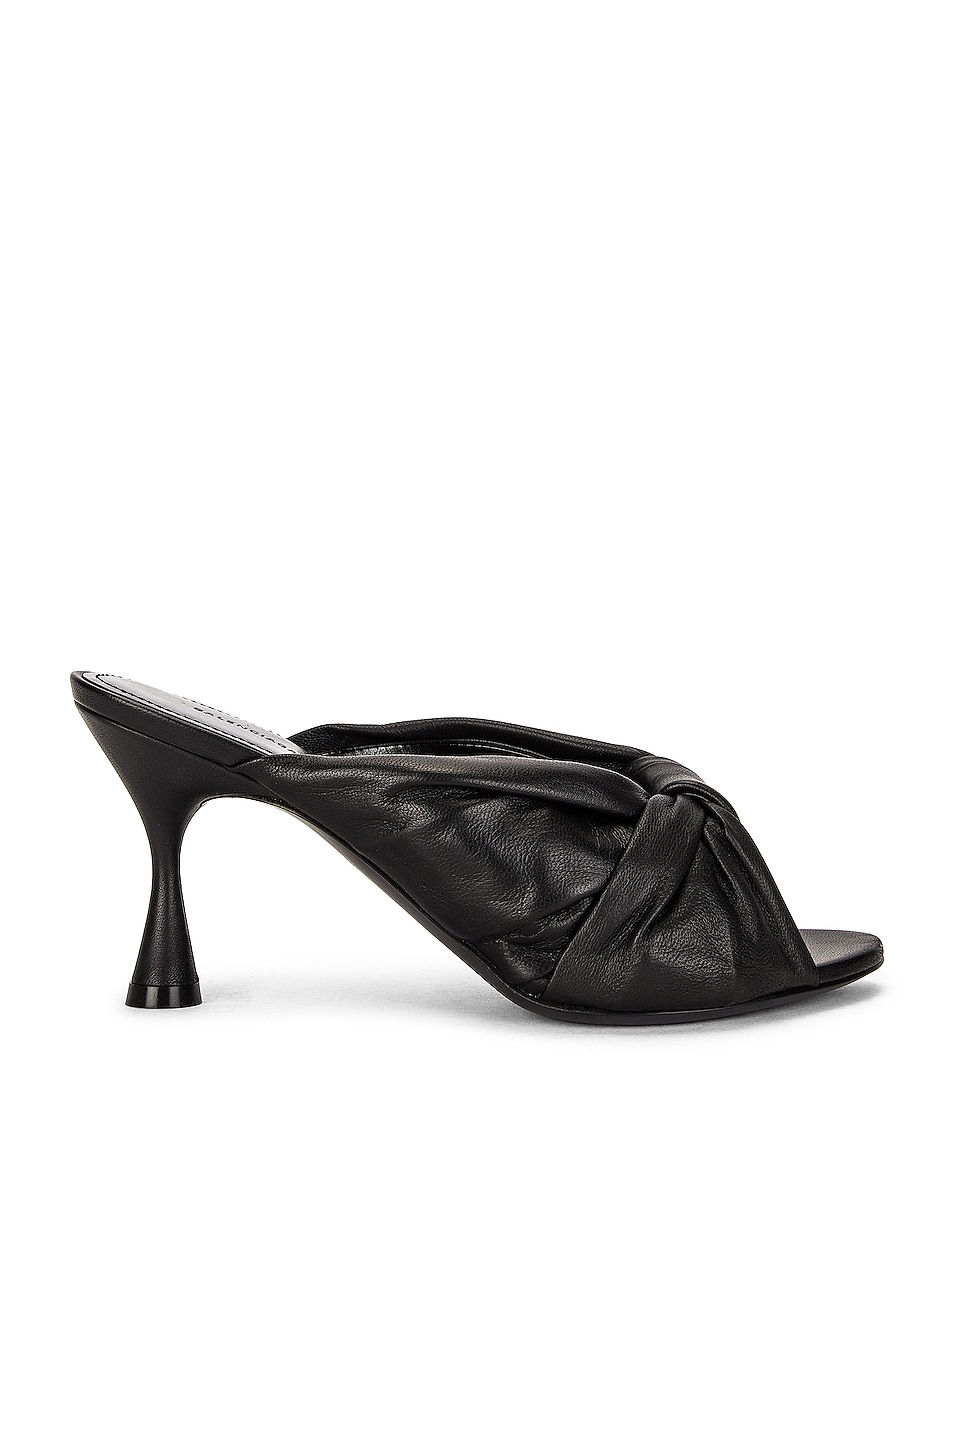 Image 1 of Balenciaga Drapy Heel Sandals in Black